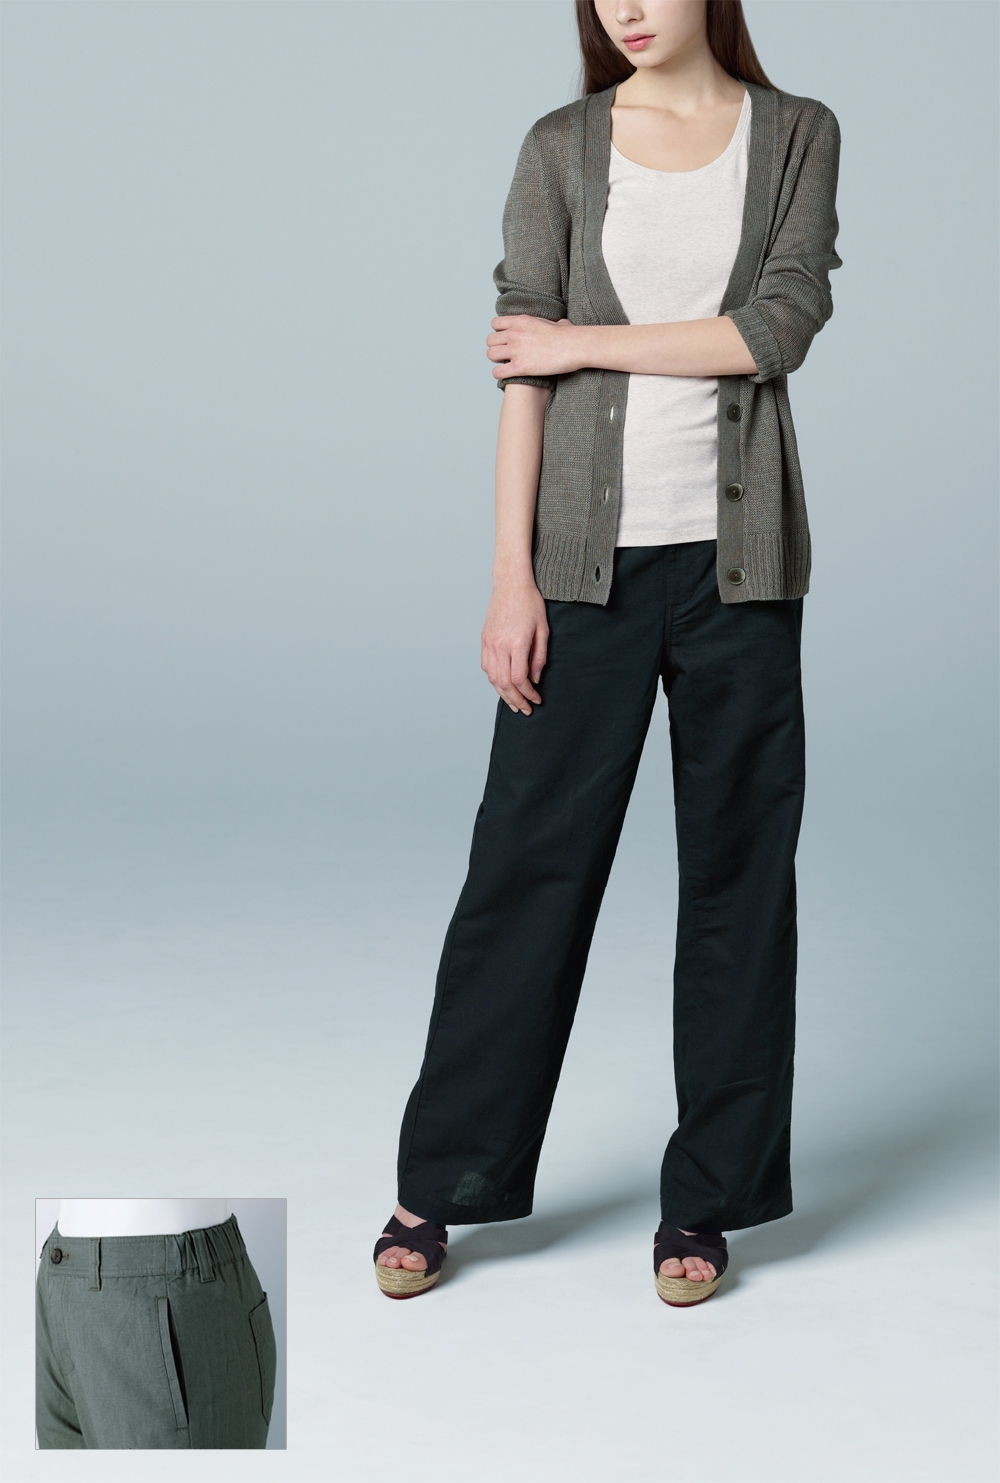 Photo: Pants that add coolness to summer and warmth to winter! 'Linen Cotton Relaxed Pants' are one of Uniqlo's classic trousers with enhanced appeal on the material used. Its smoothness, light-weight, gentle-to-skin texture, high absorbency and evaporation functions make linen a luxurious material for all seasons. In addition to the elastic used at the back half of the waist that promotes absolute comfort, the pair of pants is designed with feminine elegance and dressy style for both relaxed and more formal occasions.  Flaunt your femininity with our ultra classy and comfy 'Linen Cotton Relaxed Pants'.